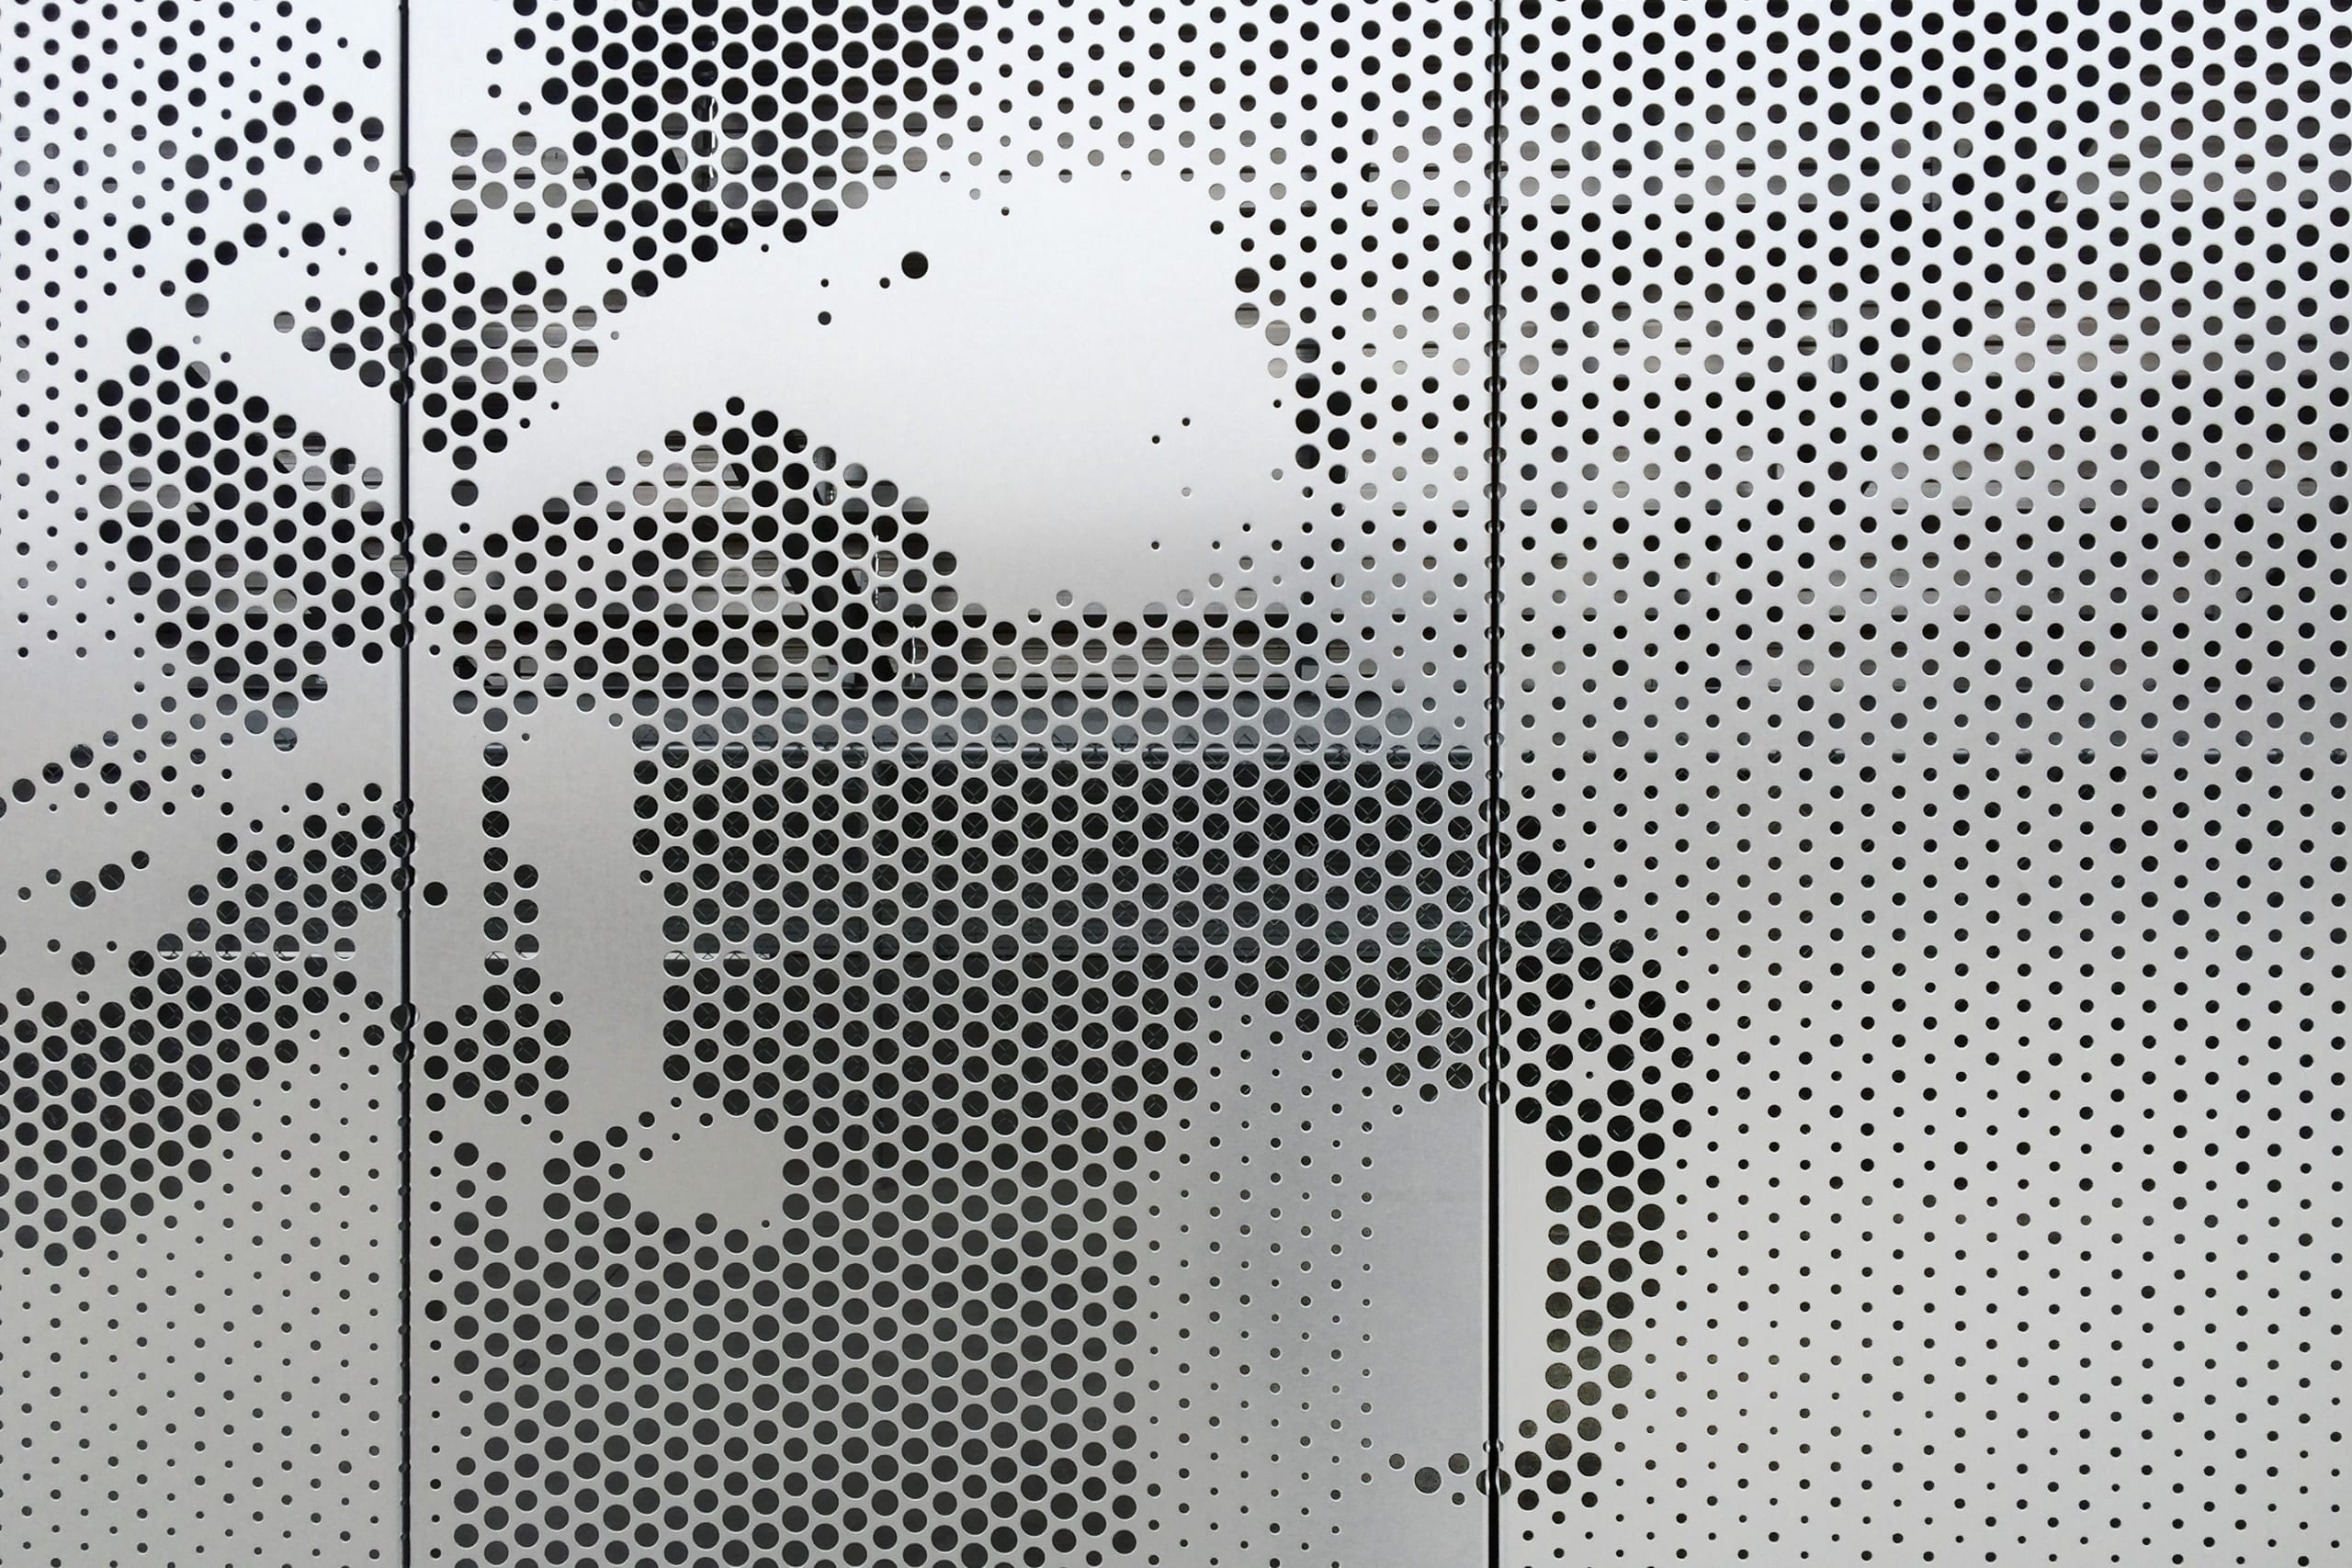 Detail of the Okie Blan<br /> chard Sports Complex perforated stainless steel.